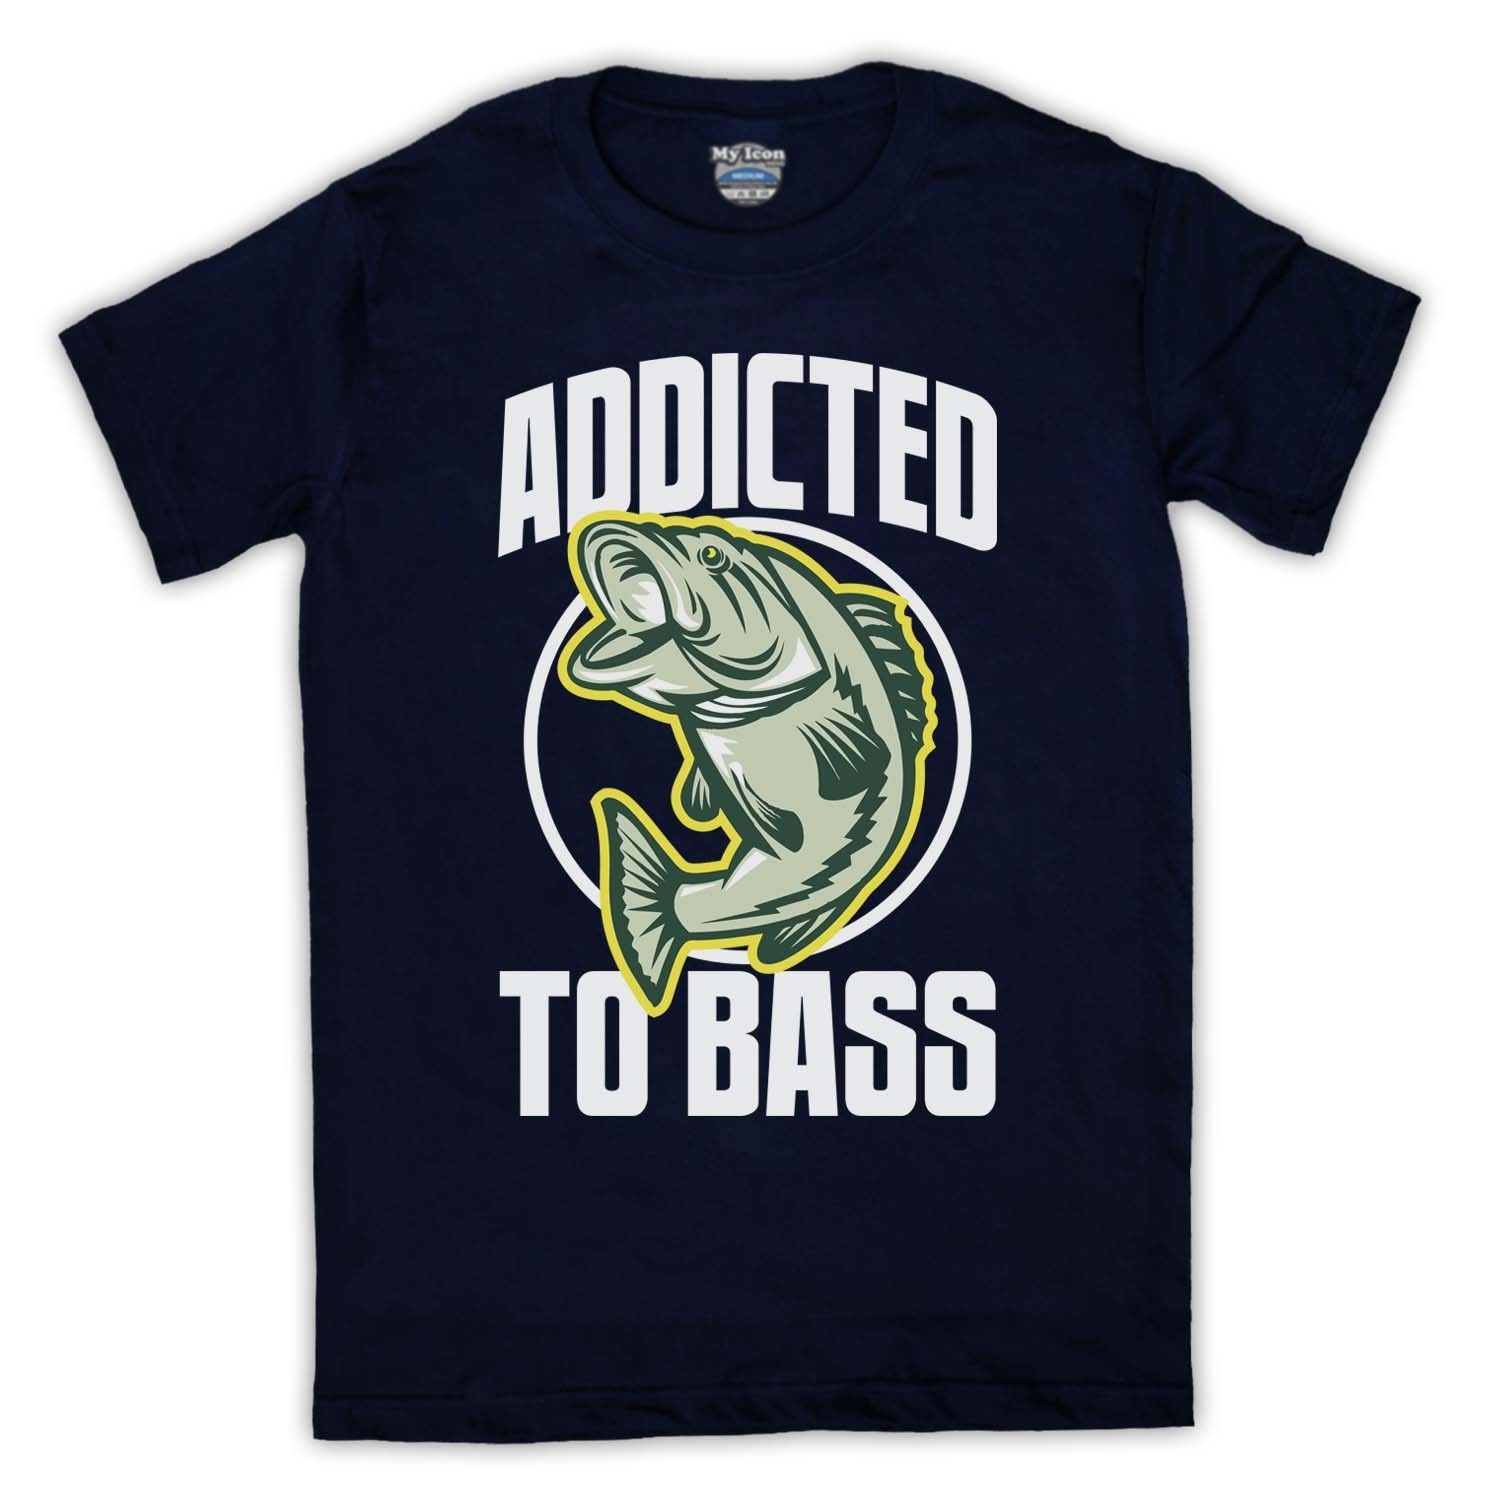 ADDICTED TO BASS FISHer FISHINGer COMEDY FUNNY RETRO MENS AND LADIES T SHIRT TEE MenS O-Neck Printed Tee T Shirt Top Tee